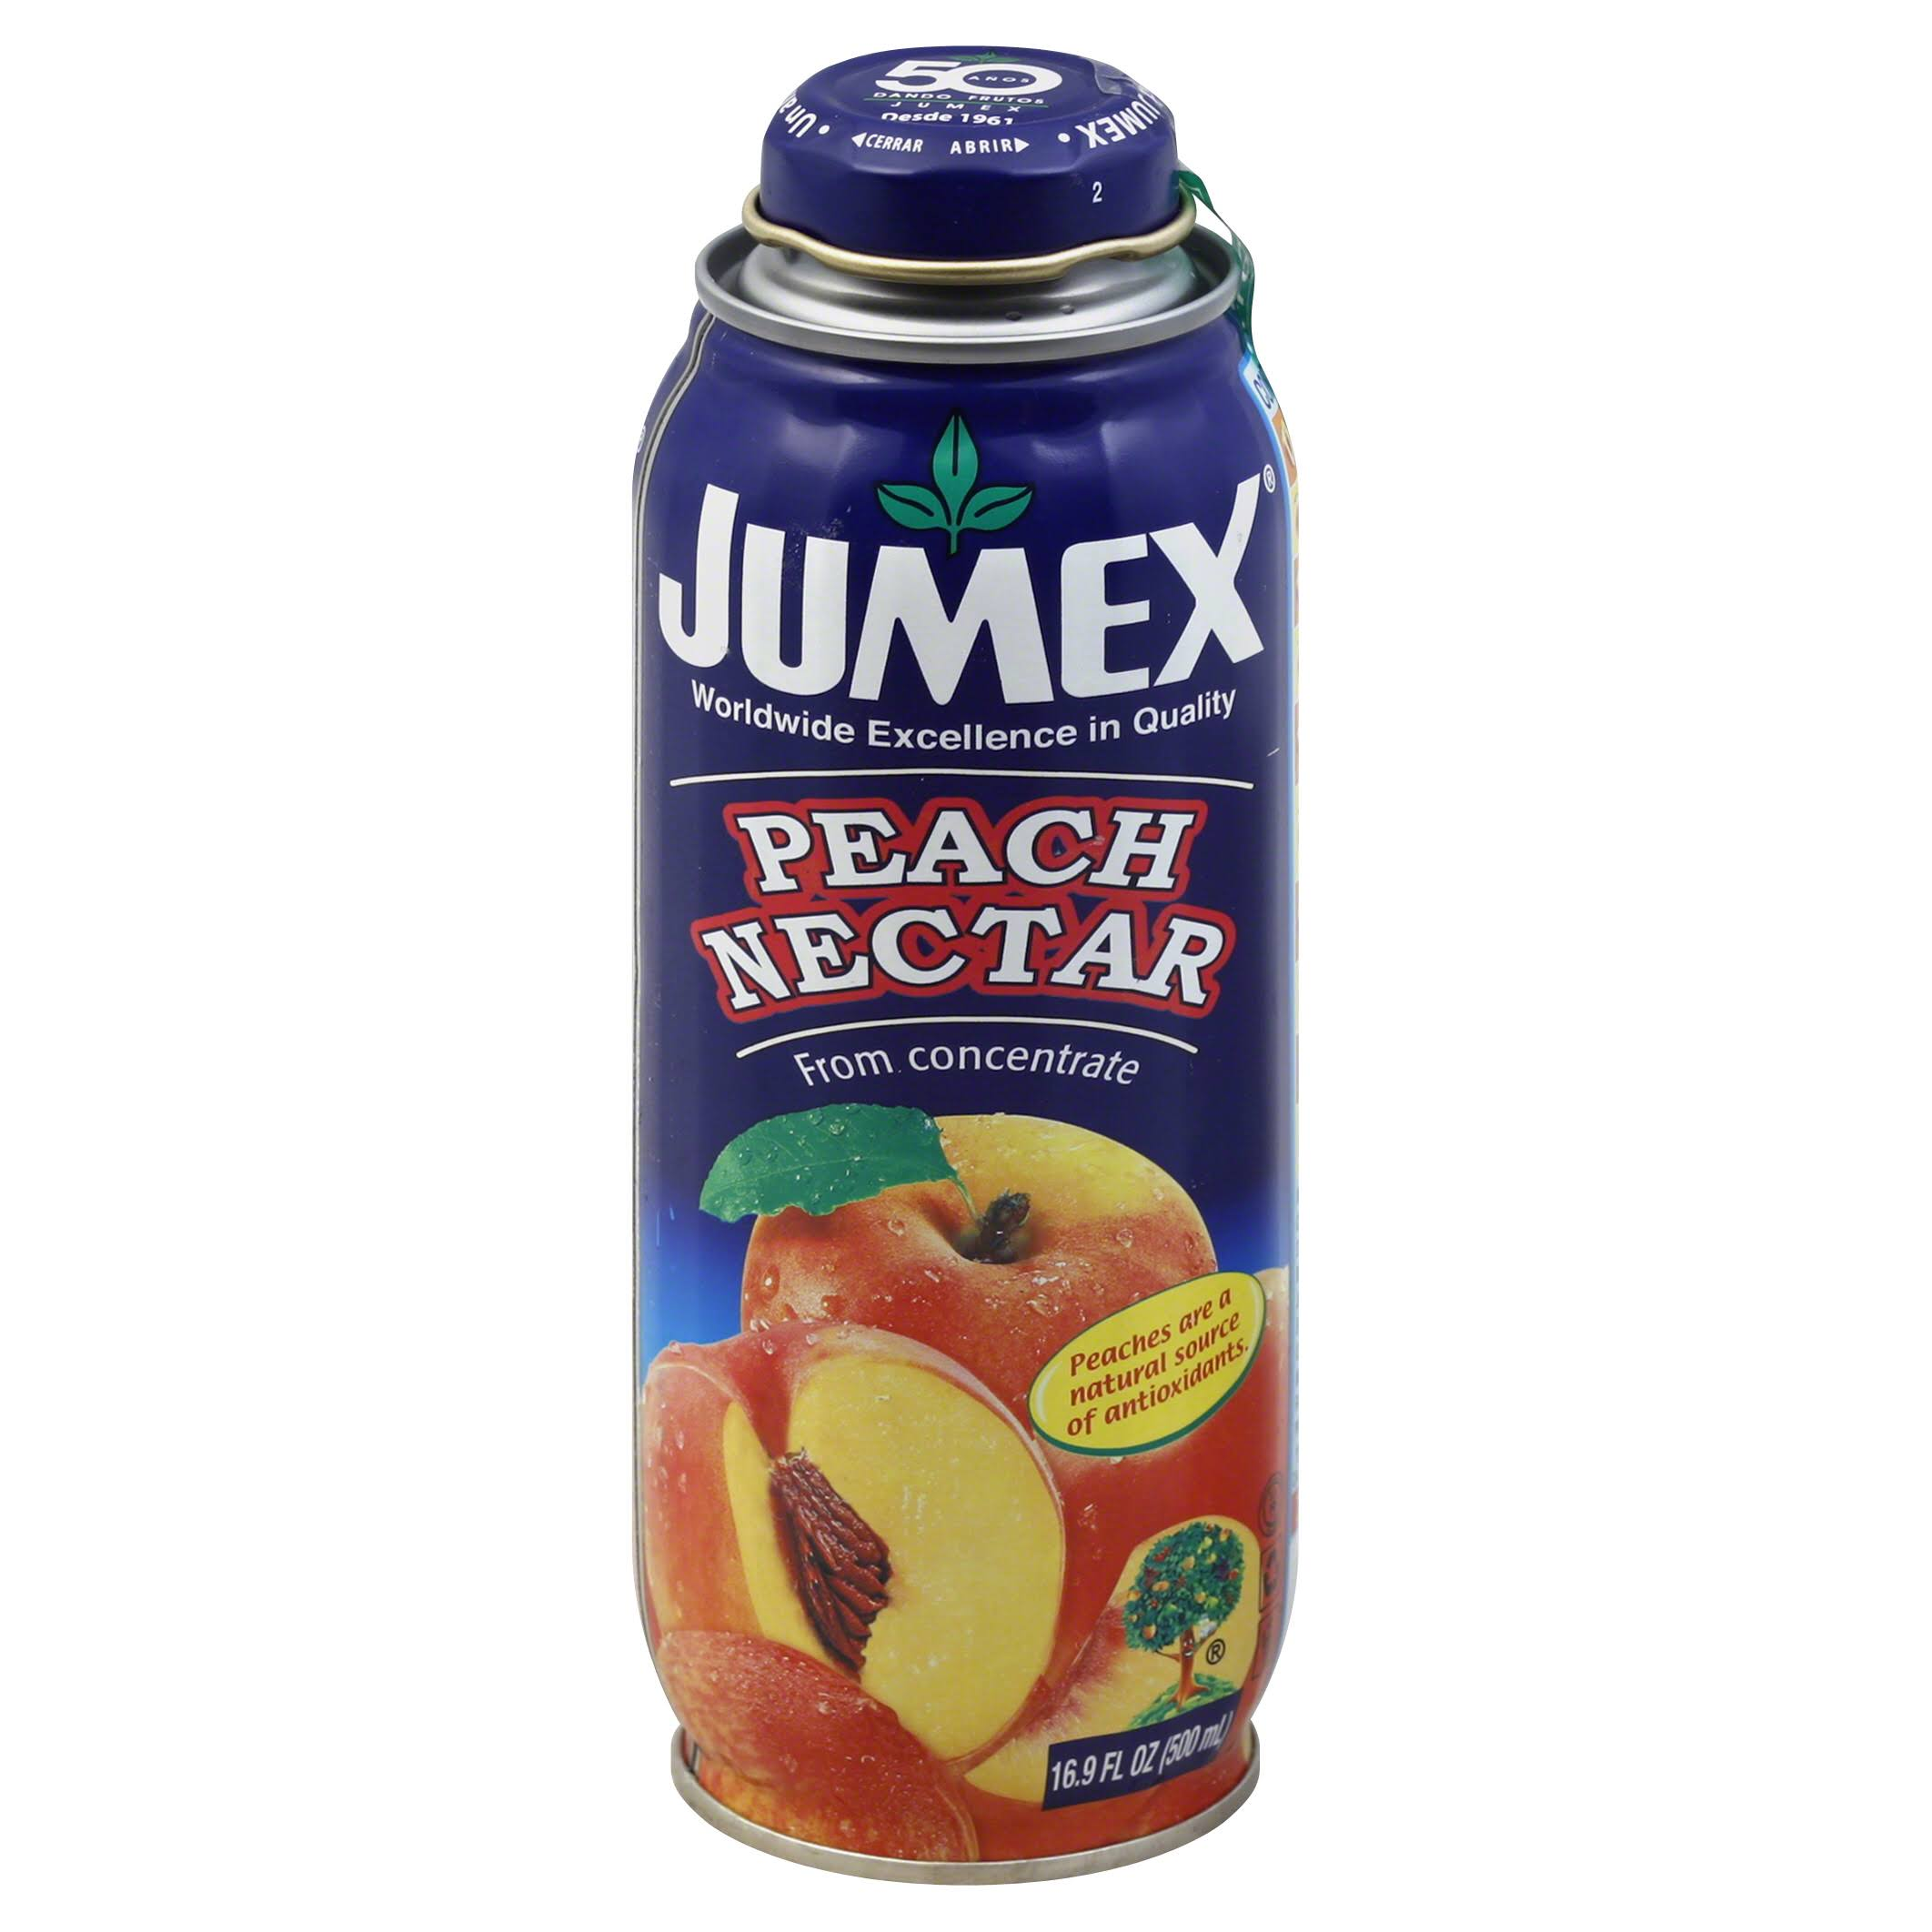 Jumex Nectar Fruit Concentrate - Peach